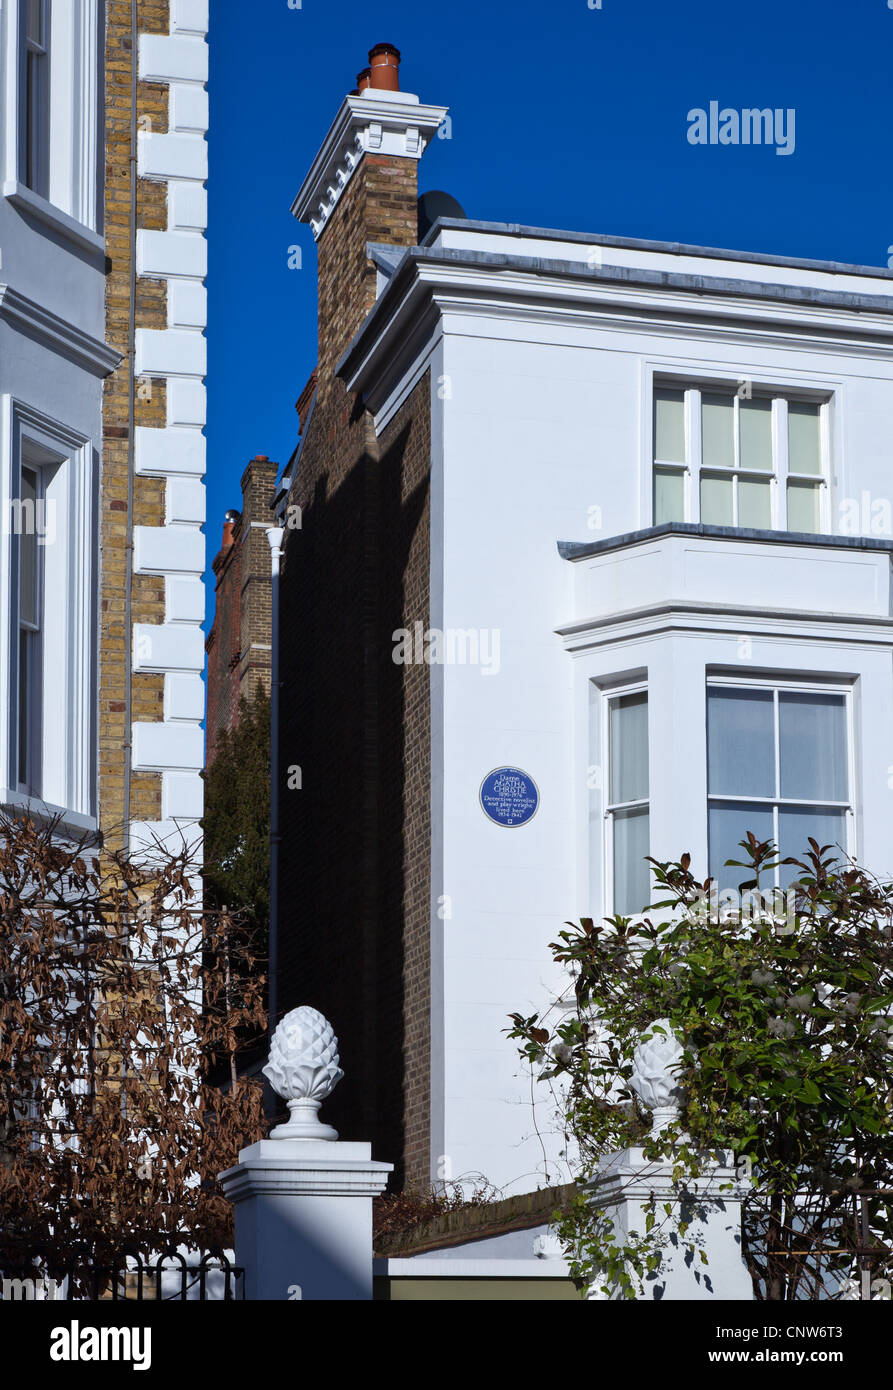 Europe England London, the Agatha Christie house in Sheffield terrace - Stock Image